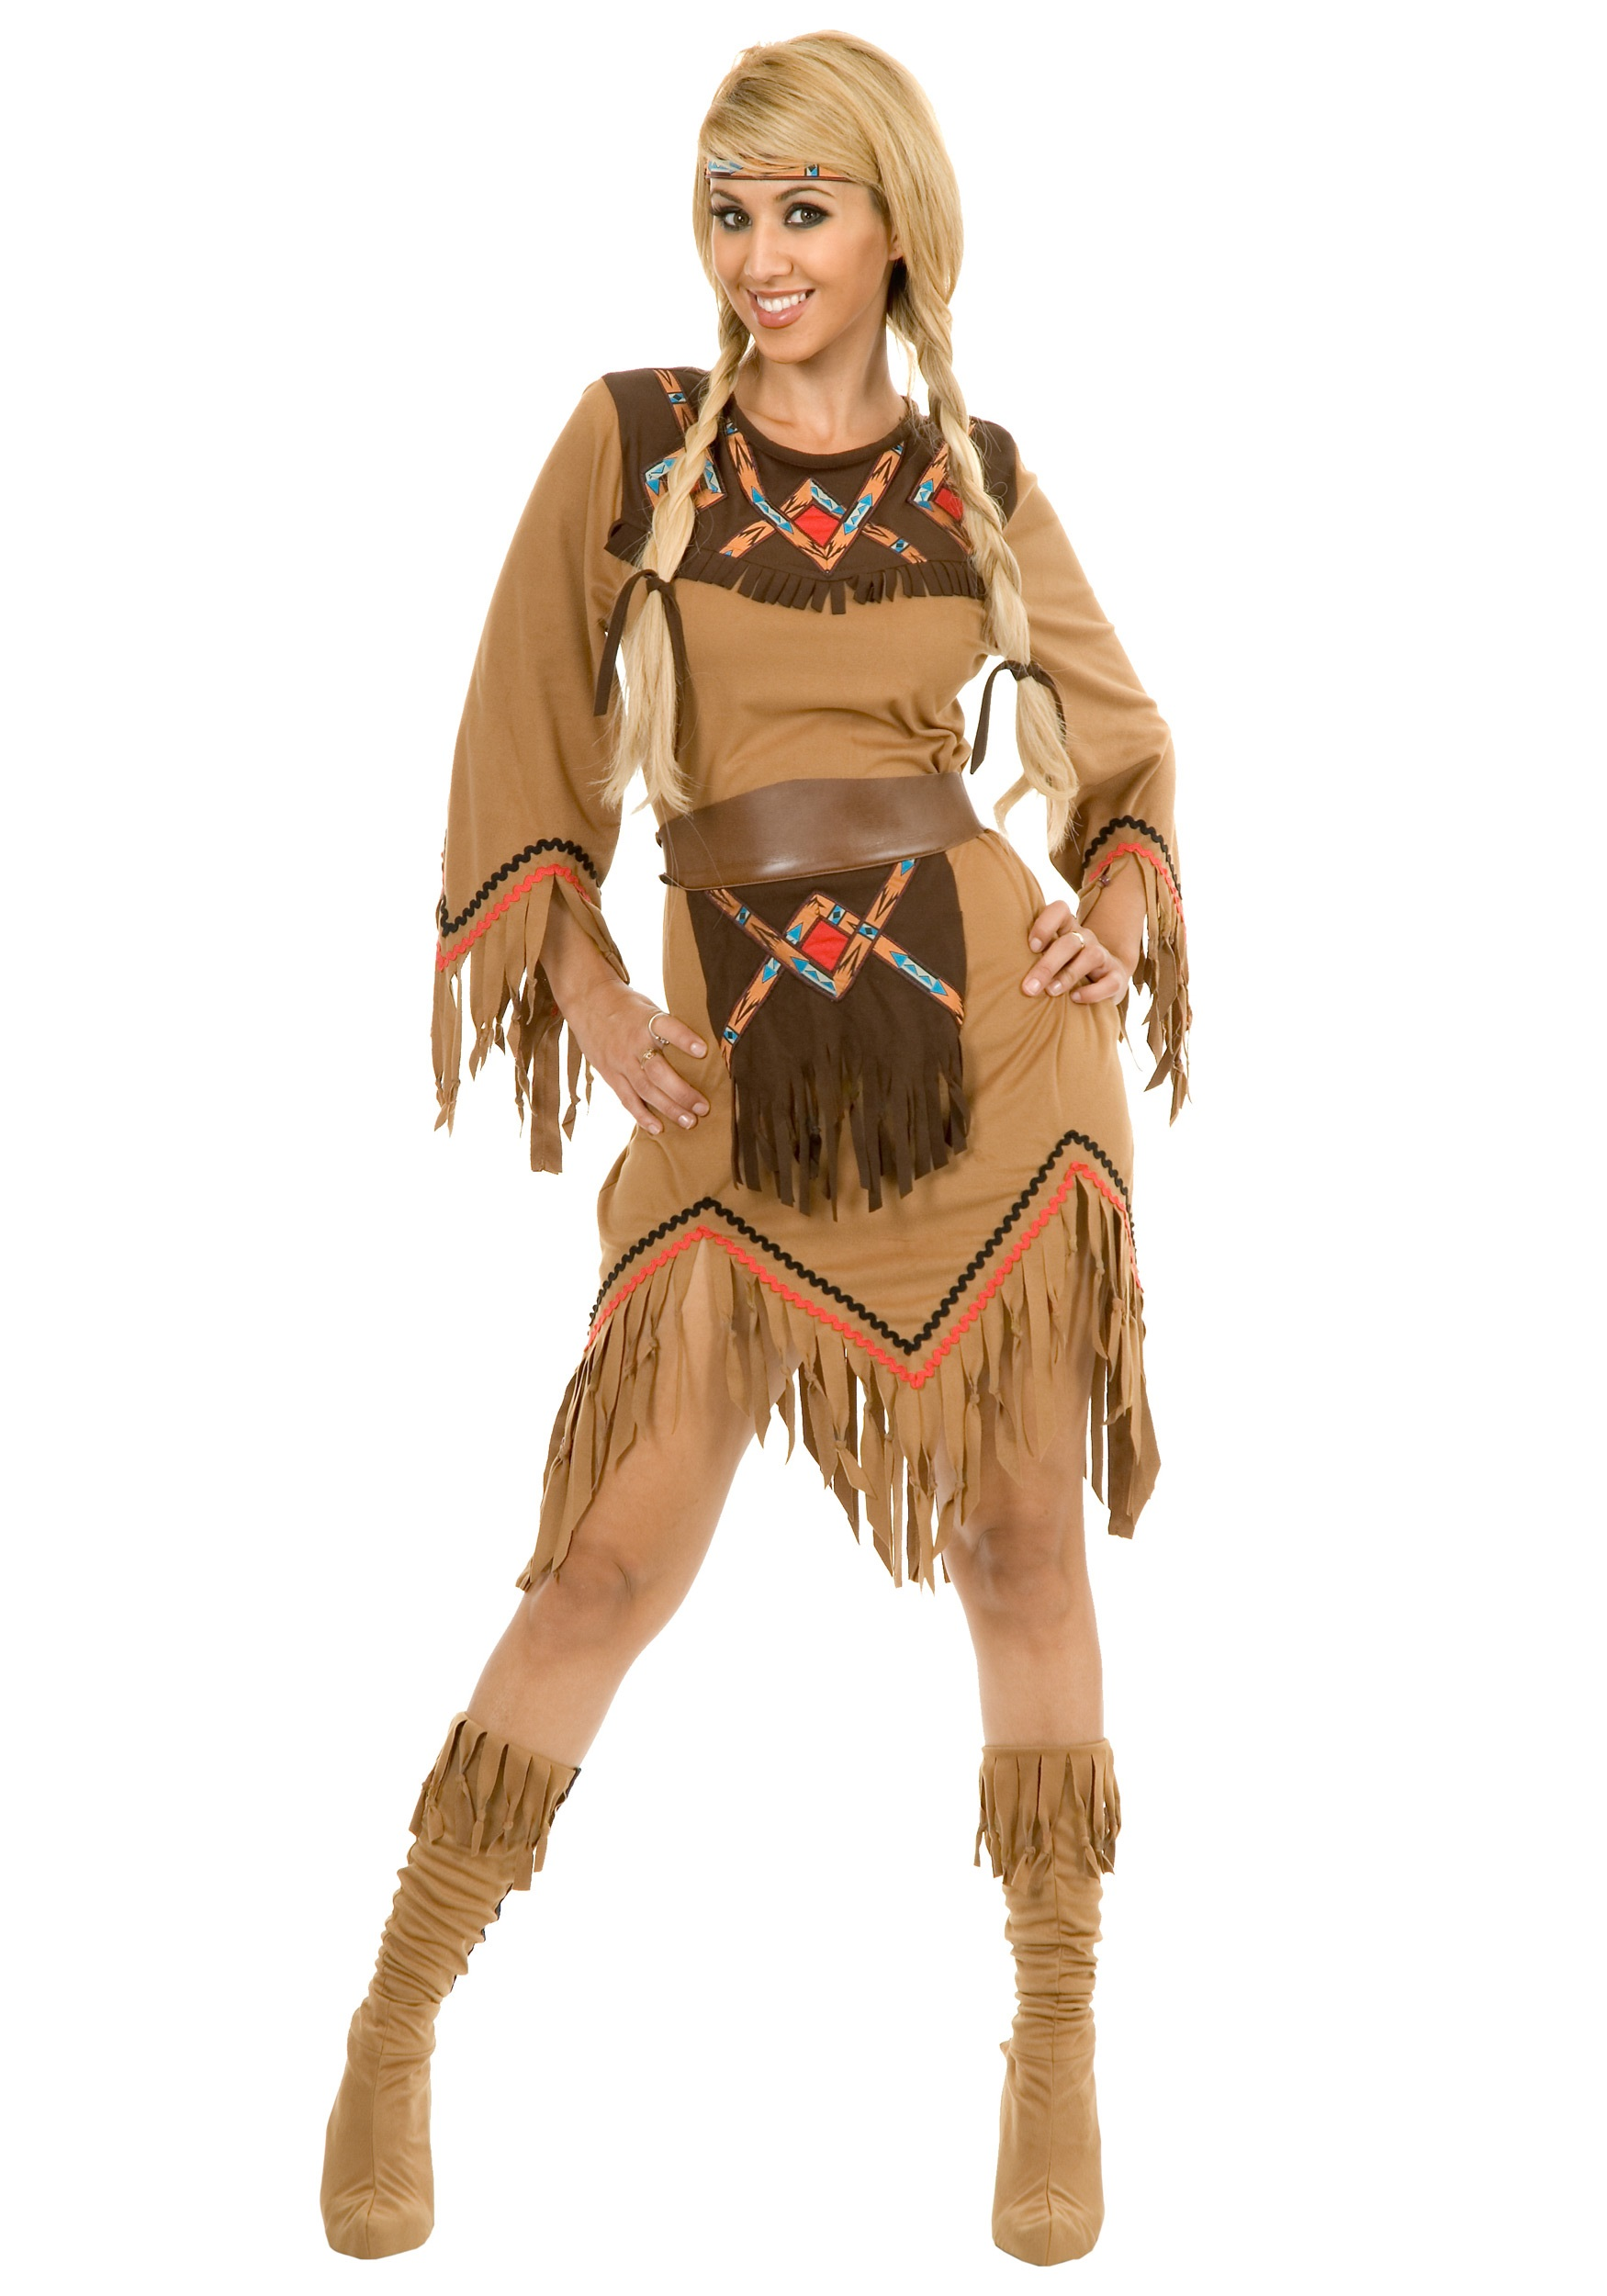 Book of native american women dress in thailand by michael playzoa creative native american red indian wild west women fancy dress costume ebay gumiabroncs Gallery